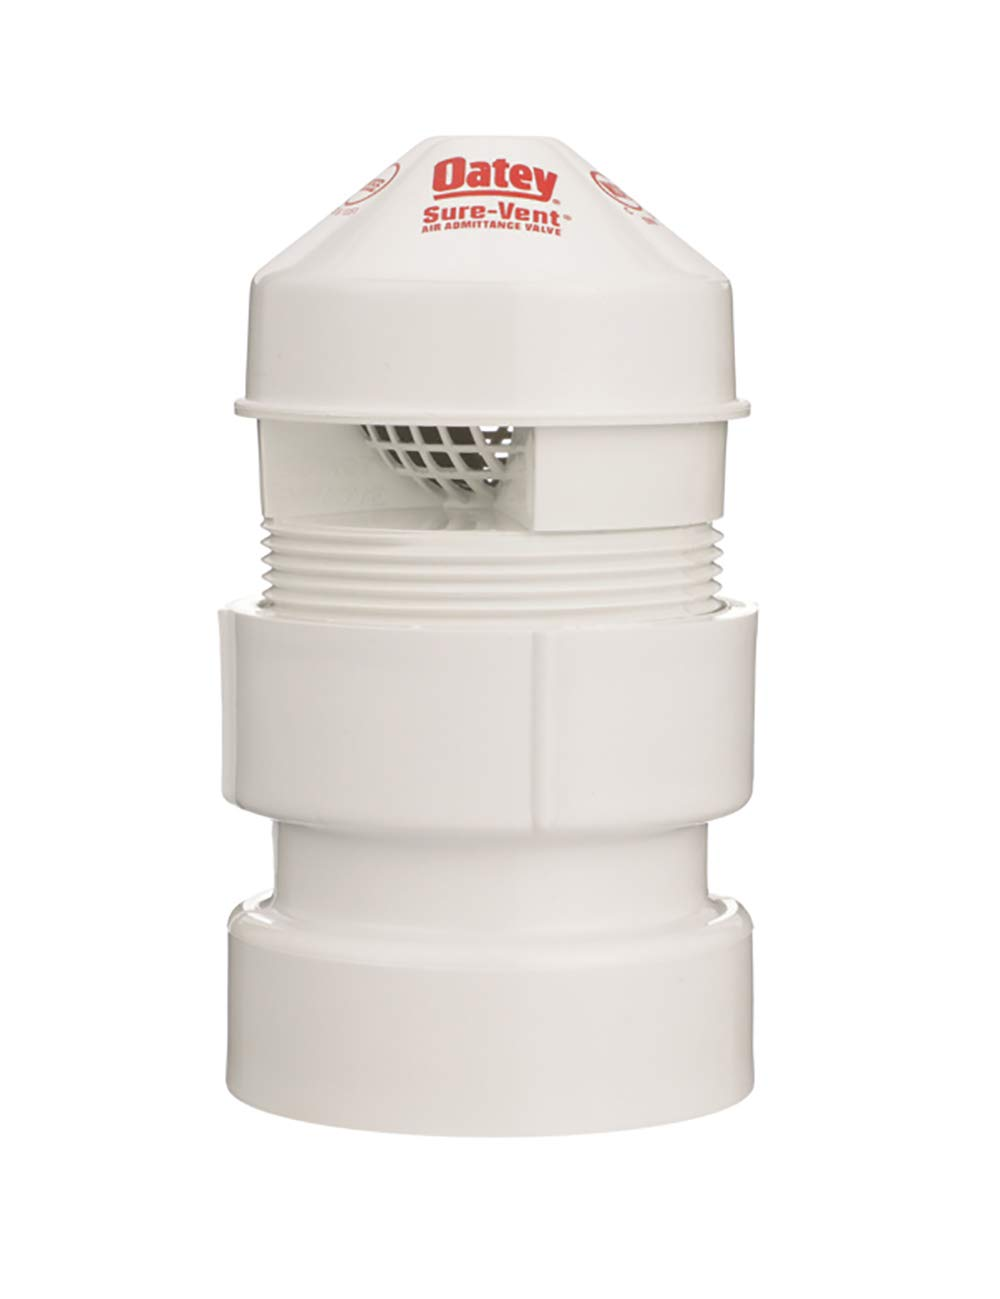 Oatey 39017 SURE-VENT AIR ADM VALVE, 1-1/2-Inch by 2-Inch, White: Home Improvement